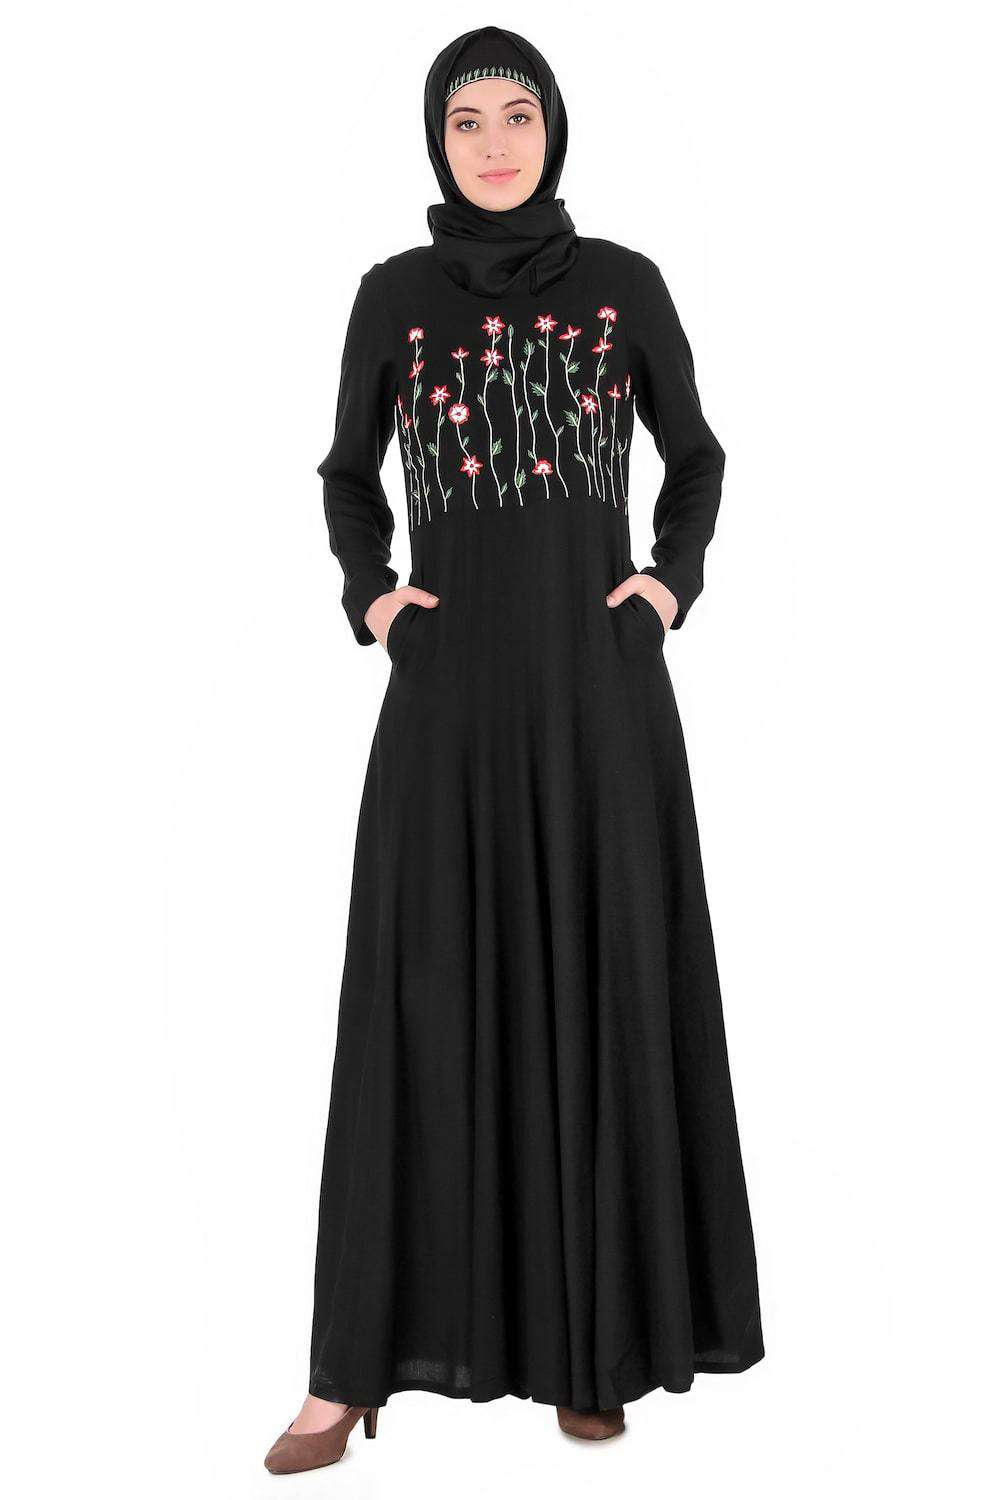 Growing Embellished Stem Anarkali Abaya